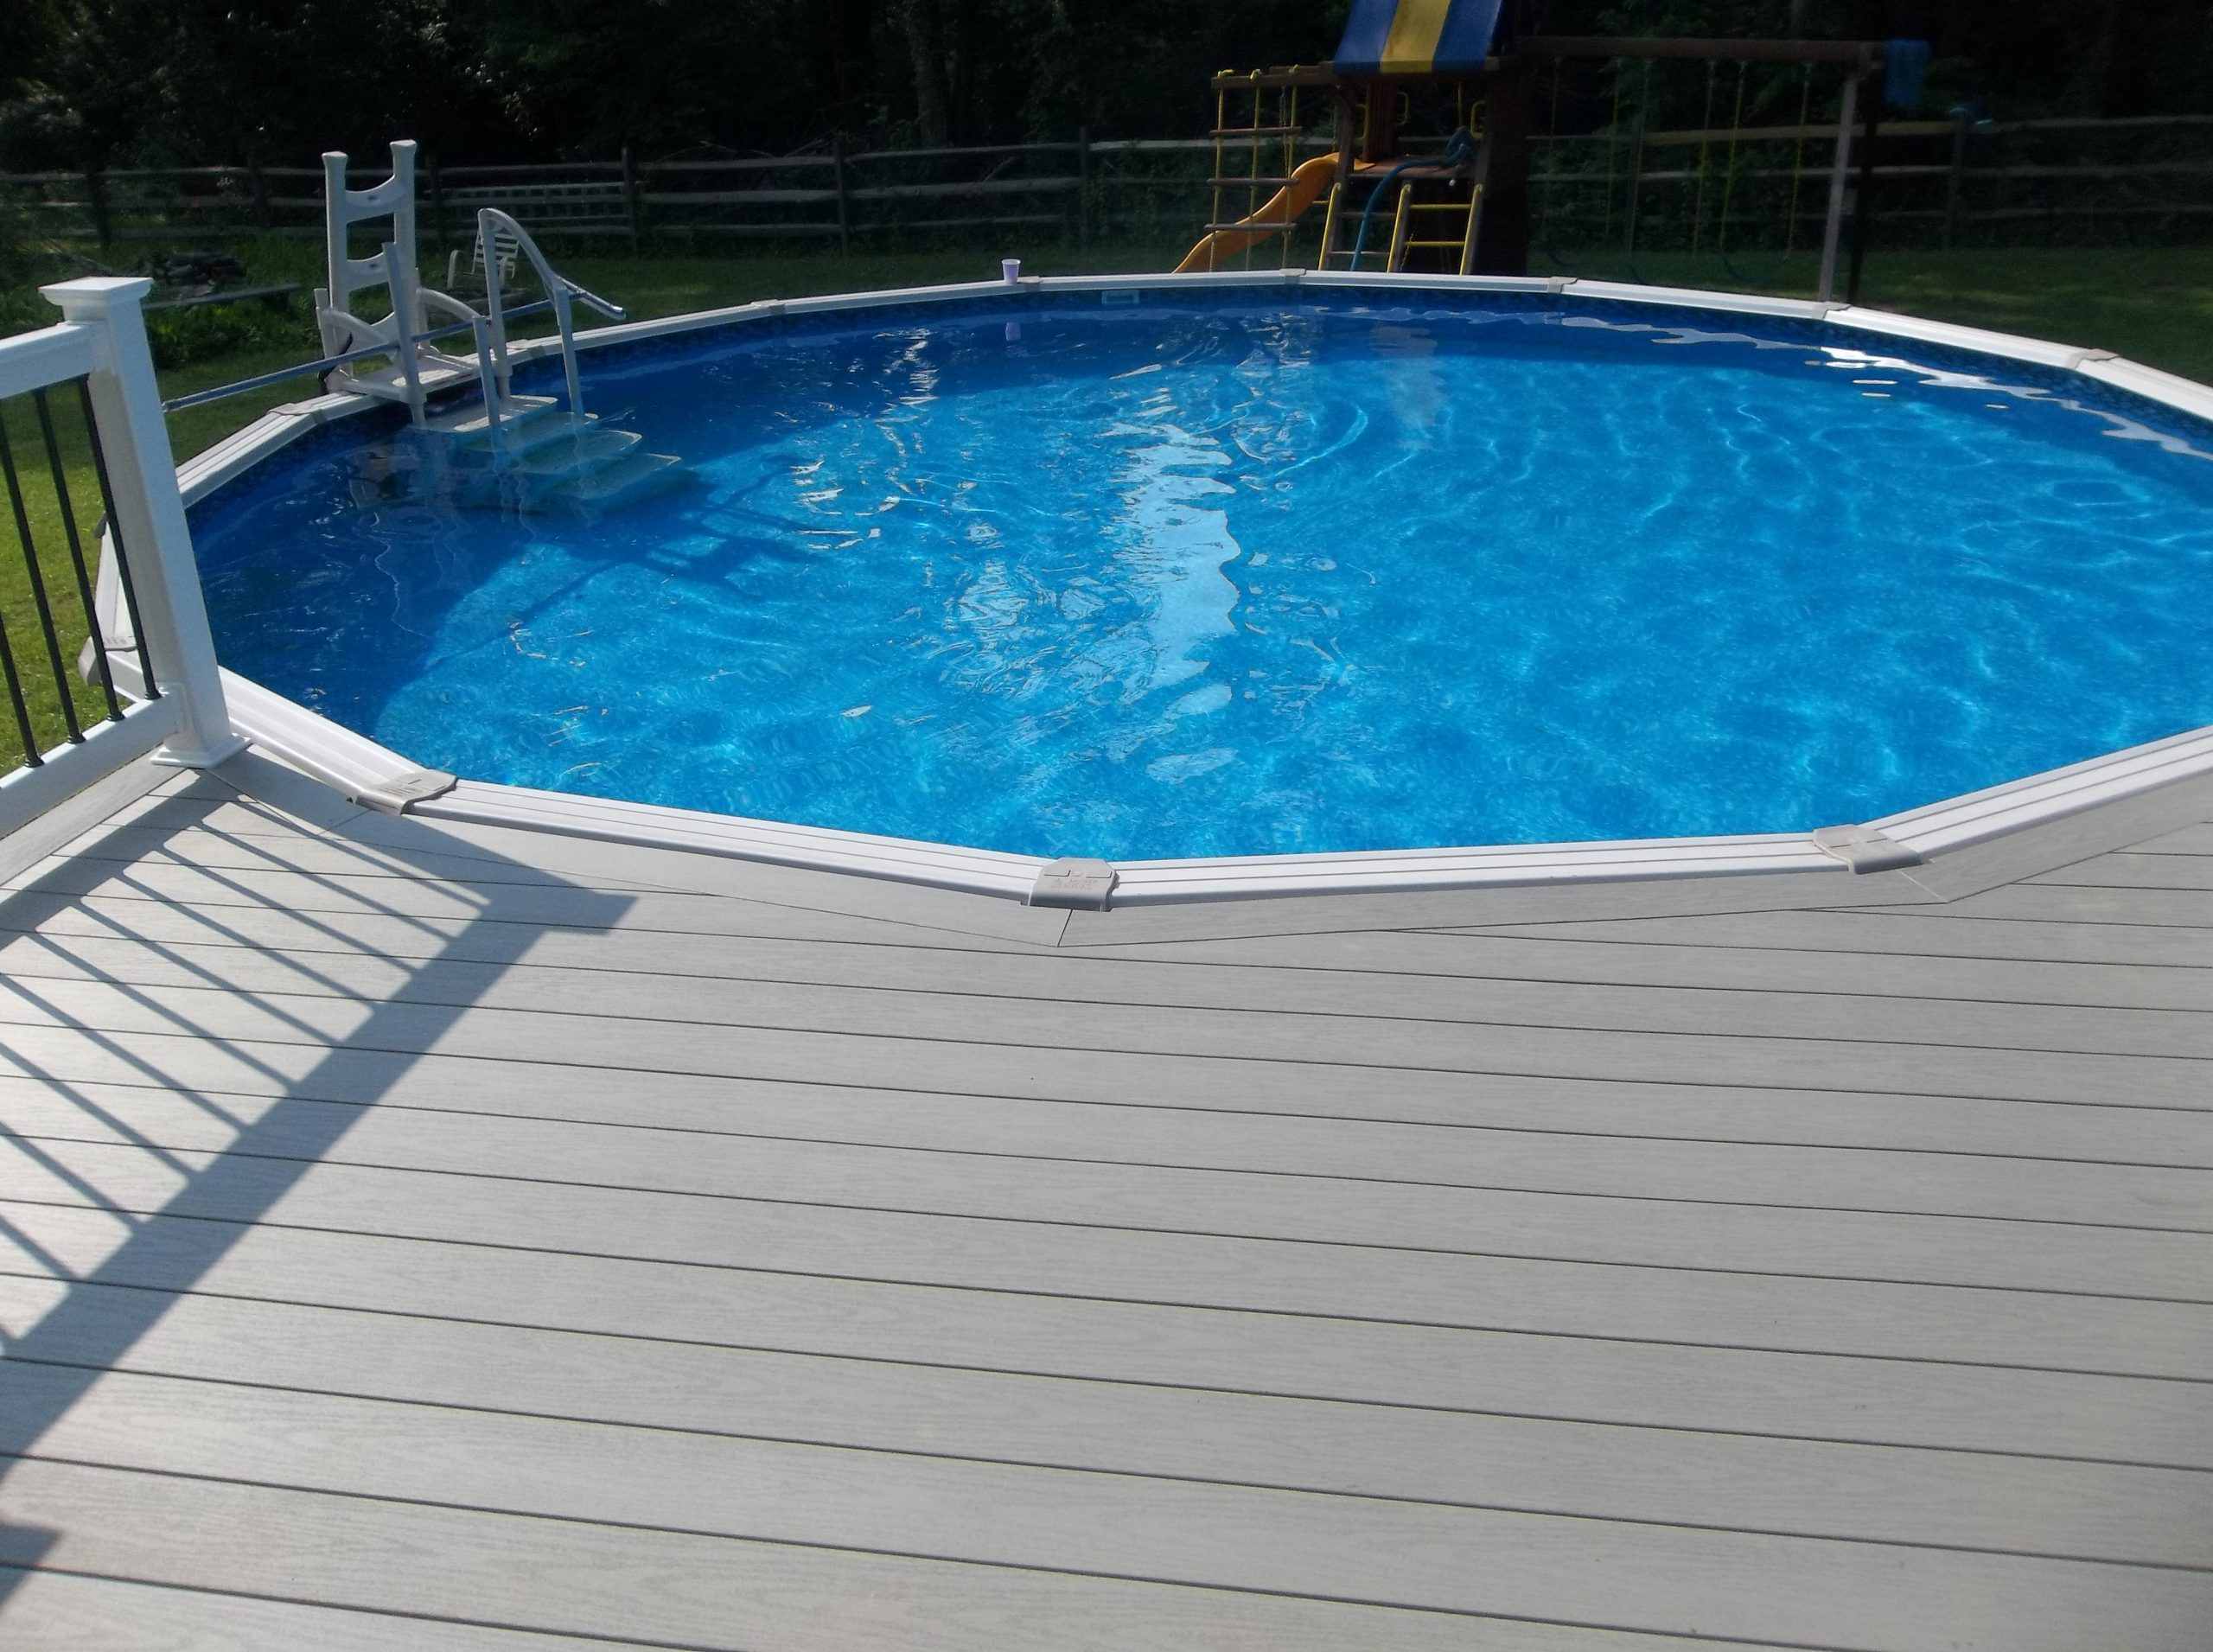 Above Ground Pool Deck Ingenuity With, Best Composite Decking For Above Ground Pool